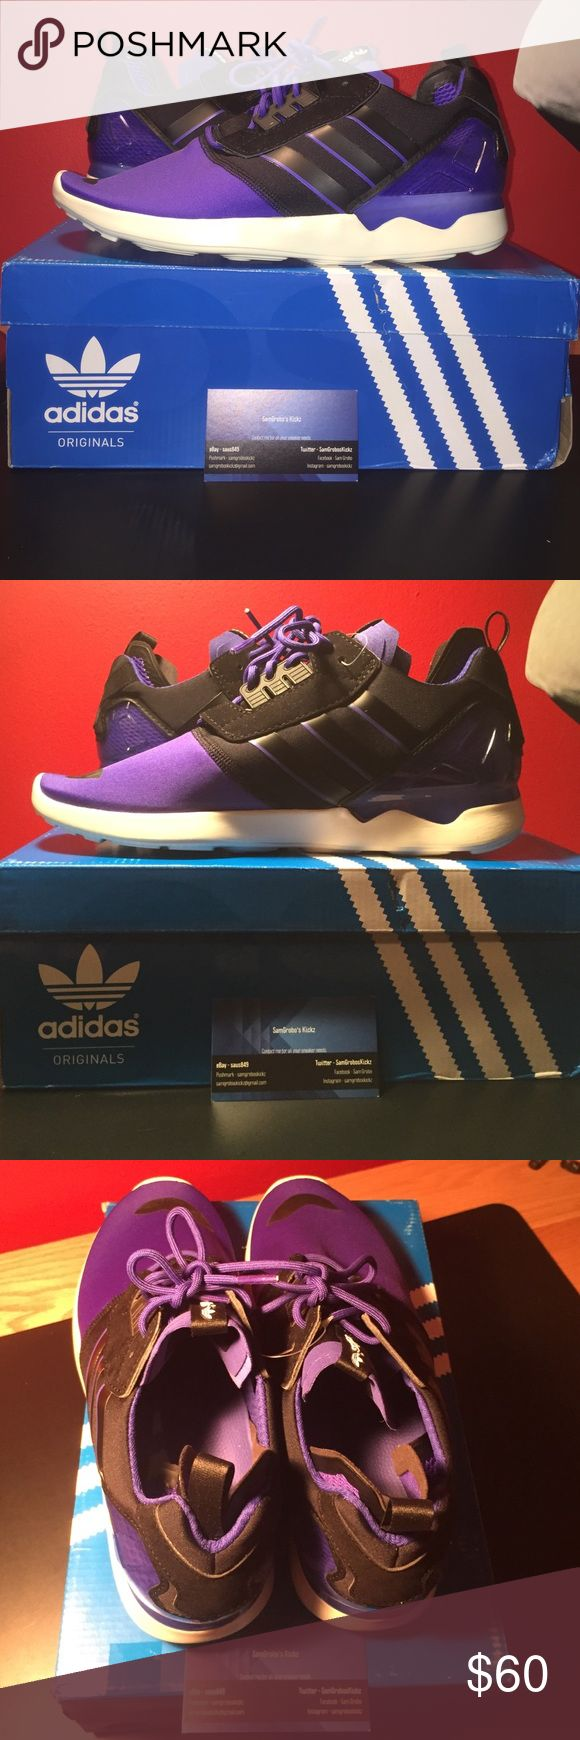 Adidas ZX 8000 Boost - Size 9.5 - Brand New Adidas ZX 8000 Boost - brand new, dead stock - comes with box and tissue paper - size 9.5 Mens Adidas Shoes Sneakers